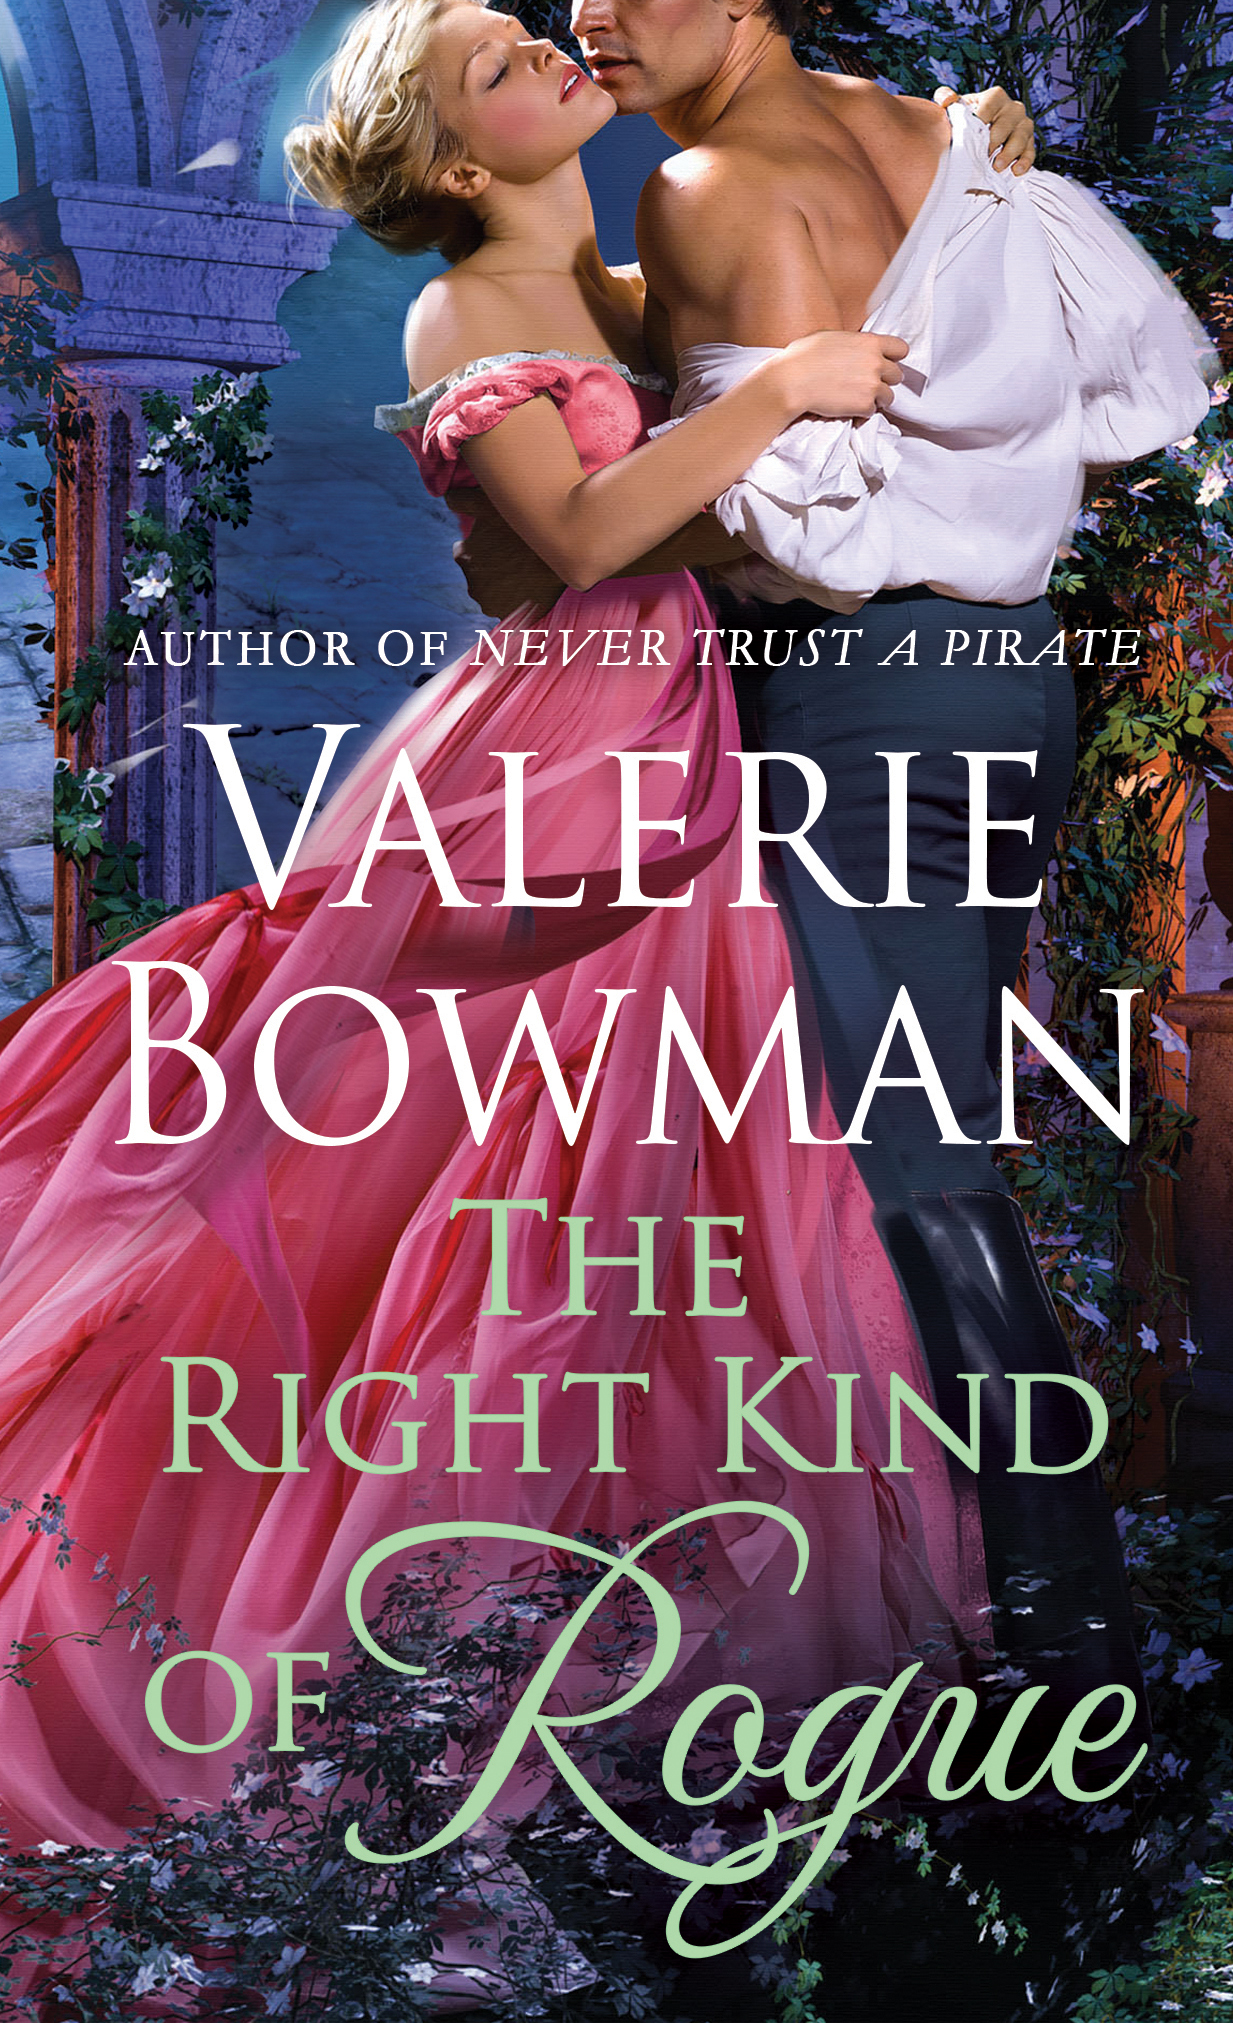 The Right Kind of Rogue by Valerie Bowman